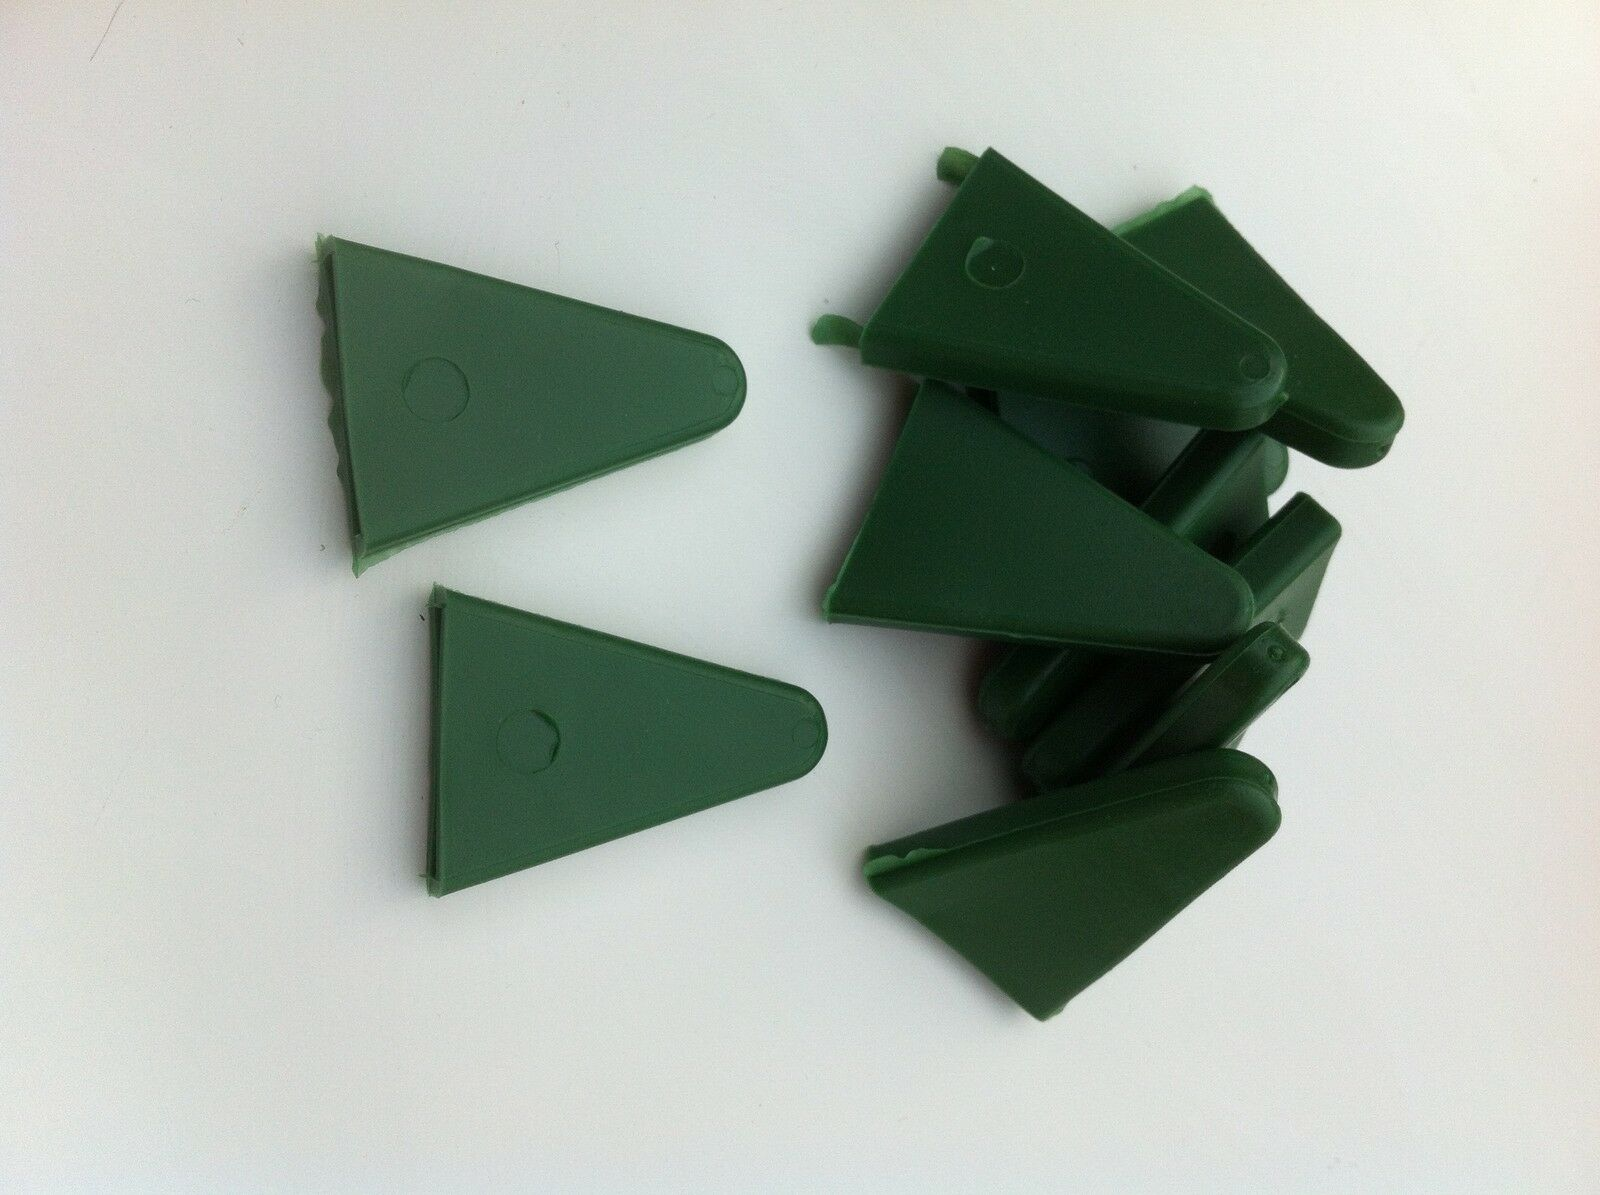 Yuzet Pack of 24 Yellow Triangular Rubber Cane Toppers Caps Green Topper Green